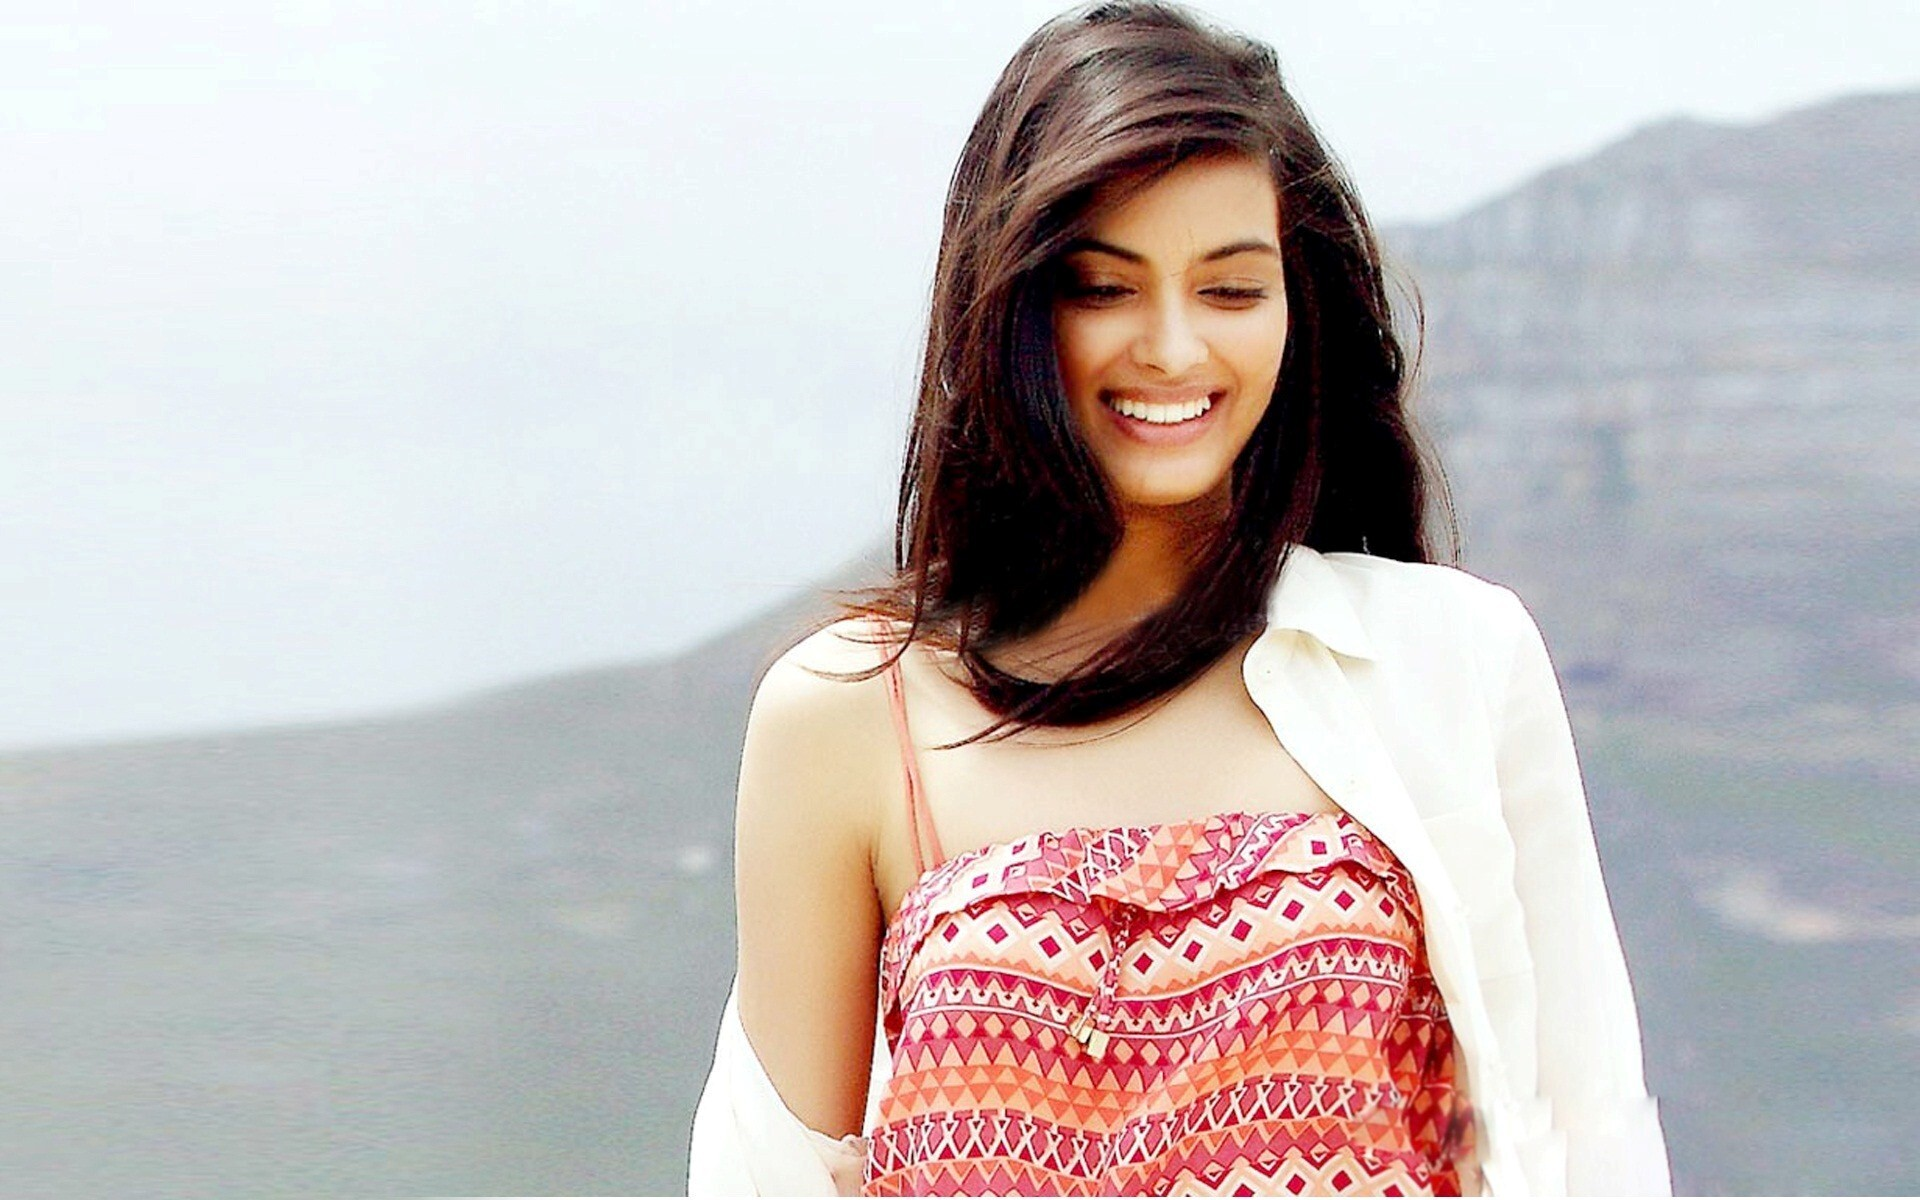 diana penty with cute smile | hd wallpapers